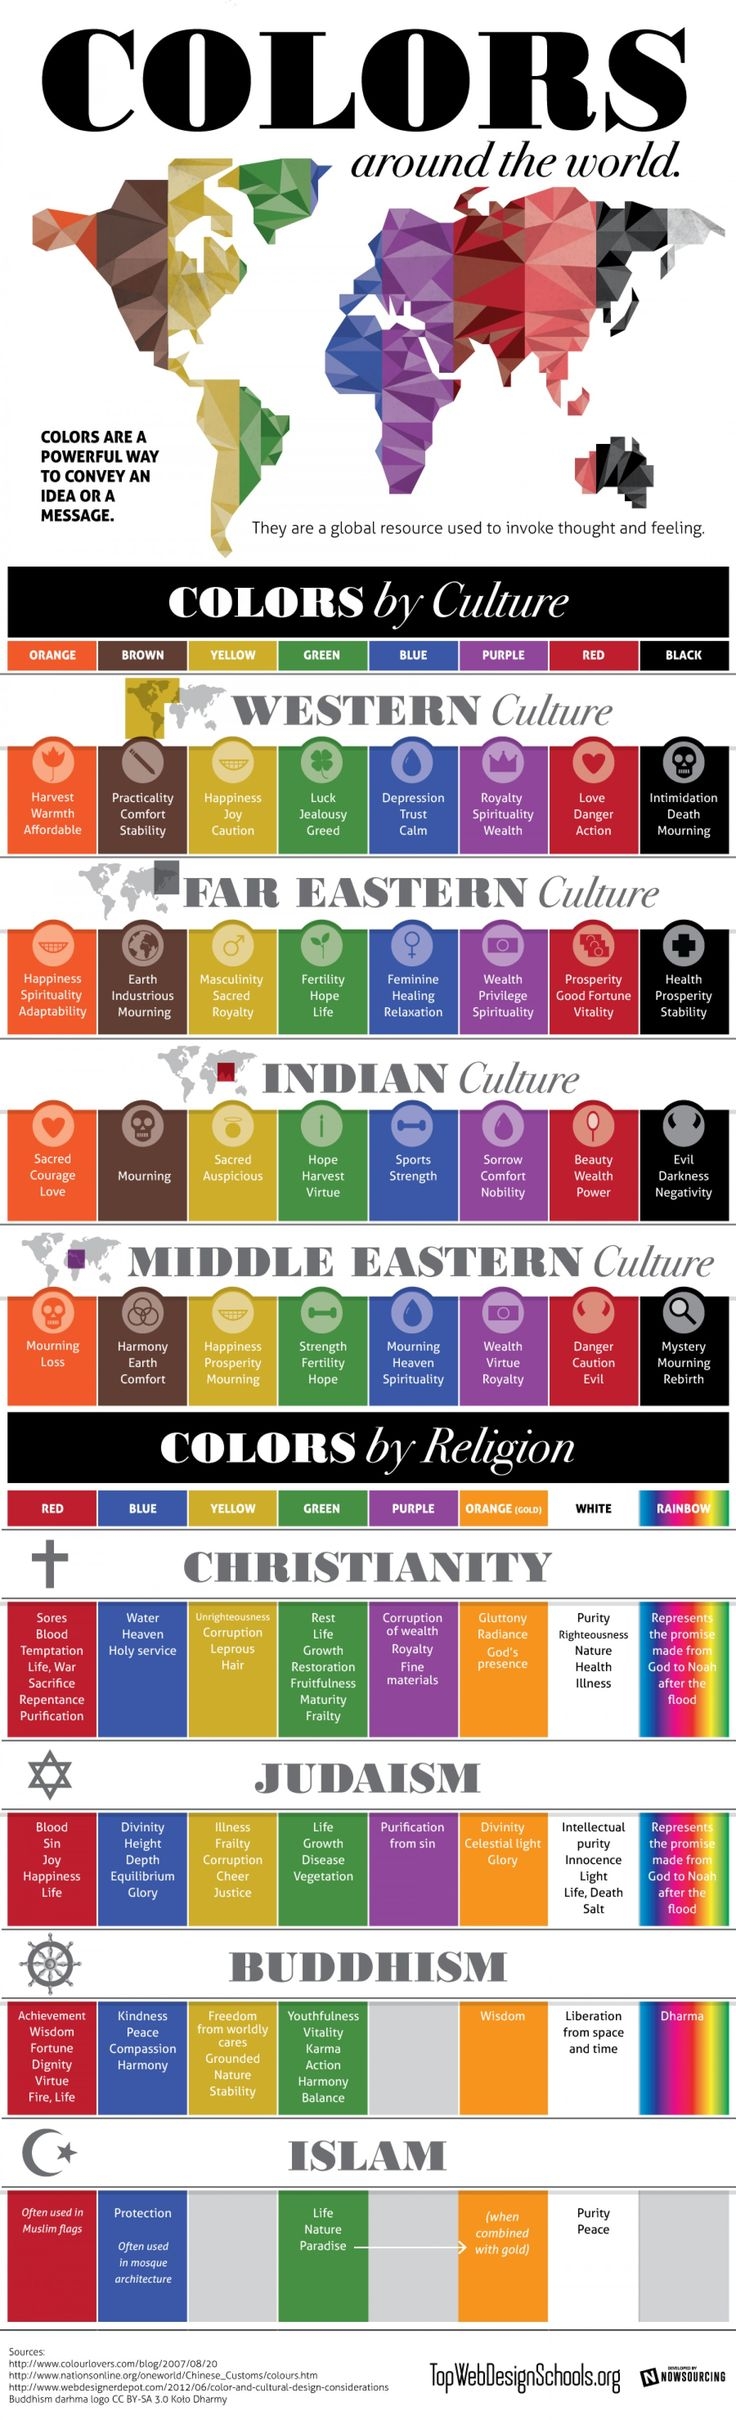 Colors Around the World: Colors do not mean the same thing in every culture and religion. This infographic provides a deeper look into the meaning...